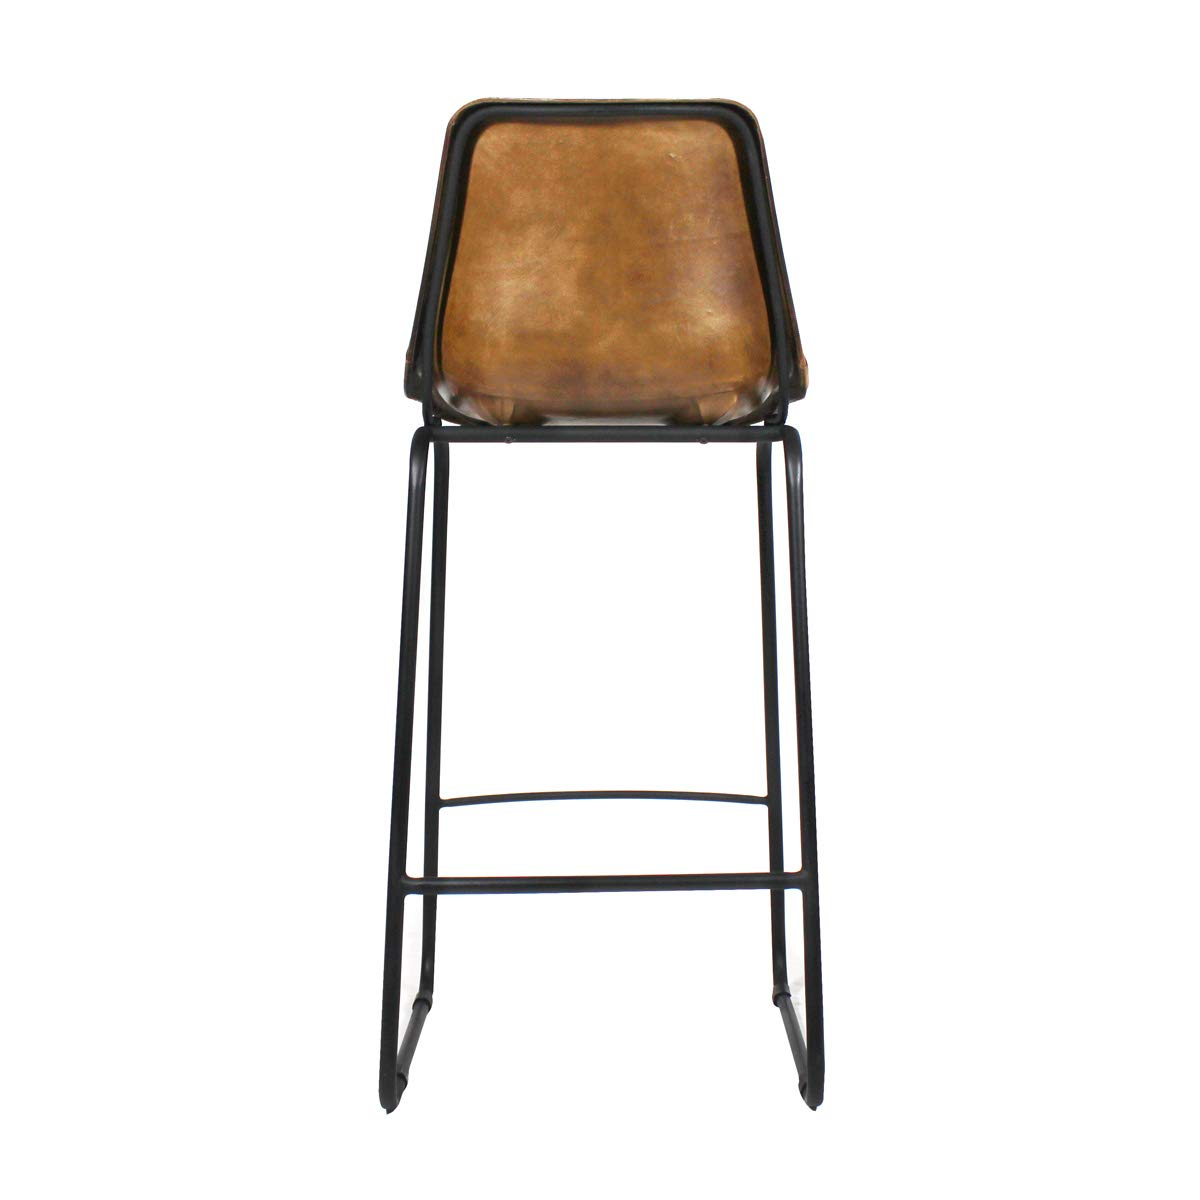 Chaise De Bar Industrielle Cuir Et Metal Dublin S16bar Marron